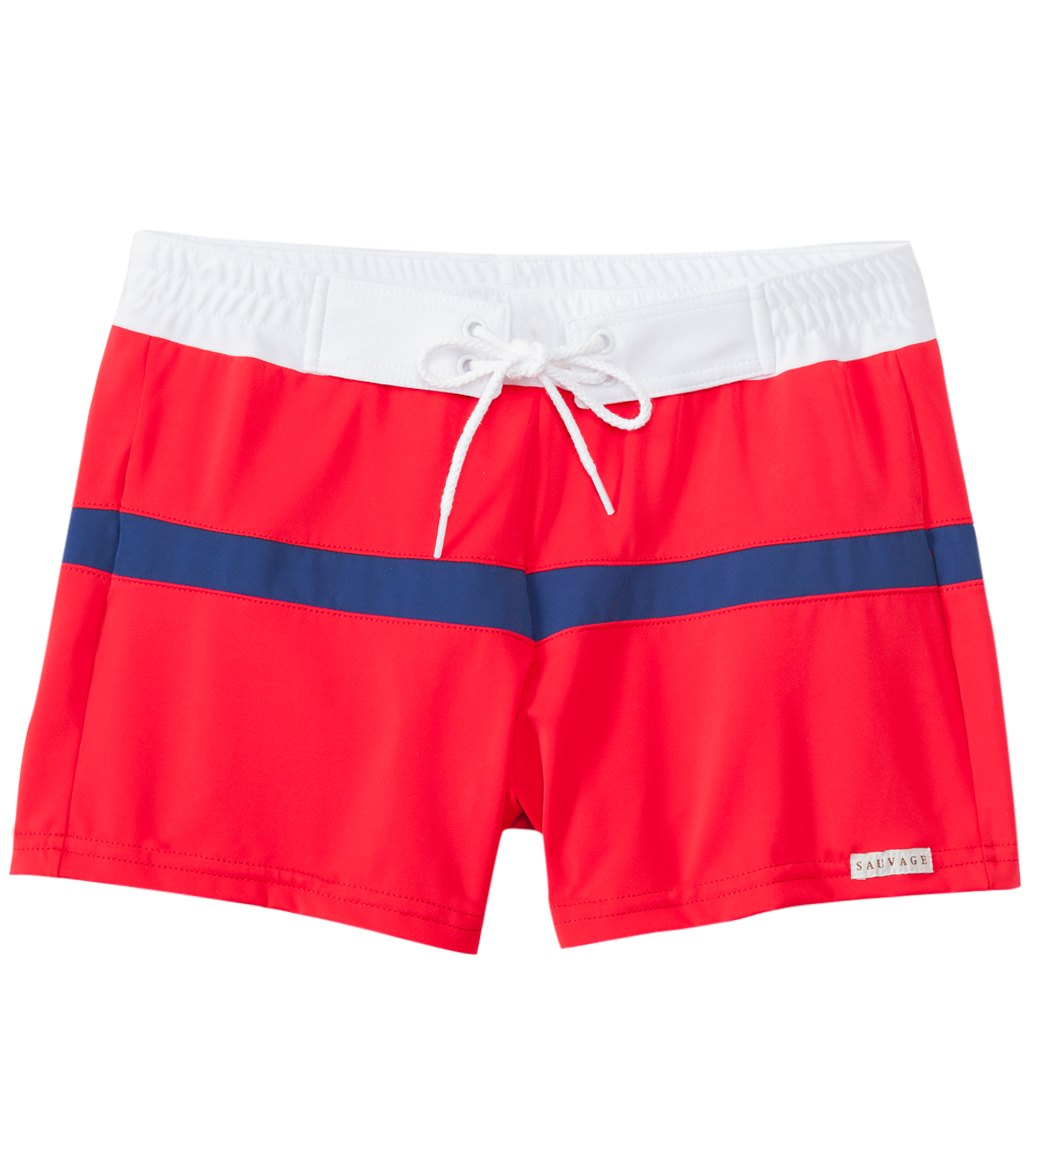 4a446cf7f3b6e Sauvage Color Spliced Sports Trunk at SwimOutlet.com - Free Shipping